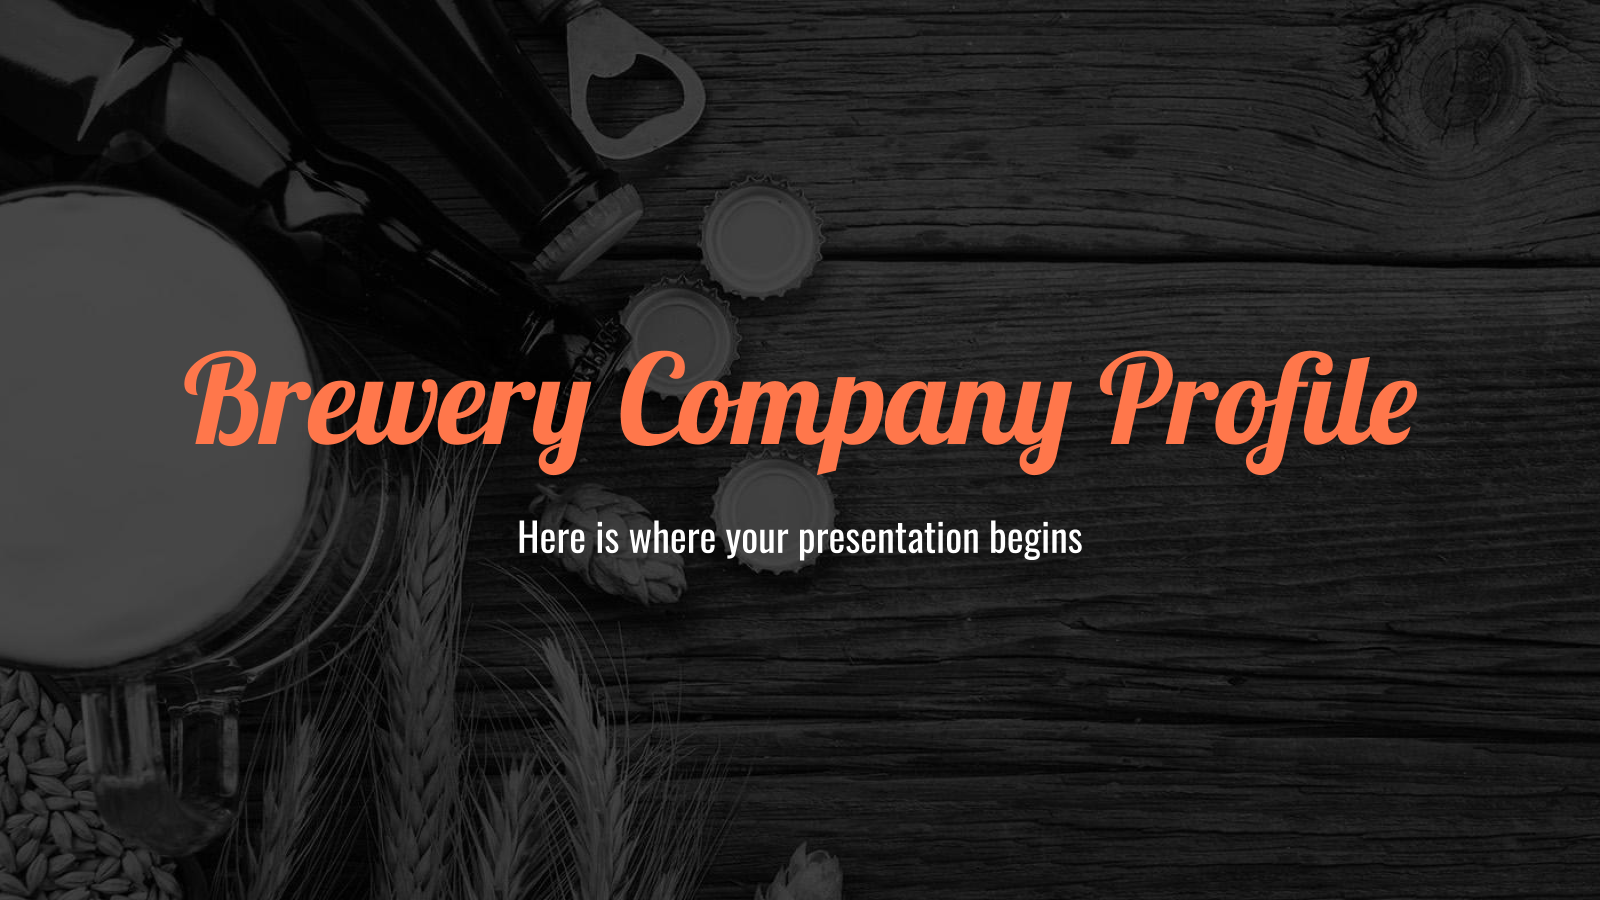 Brewery Company Profile presentation template